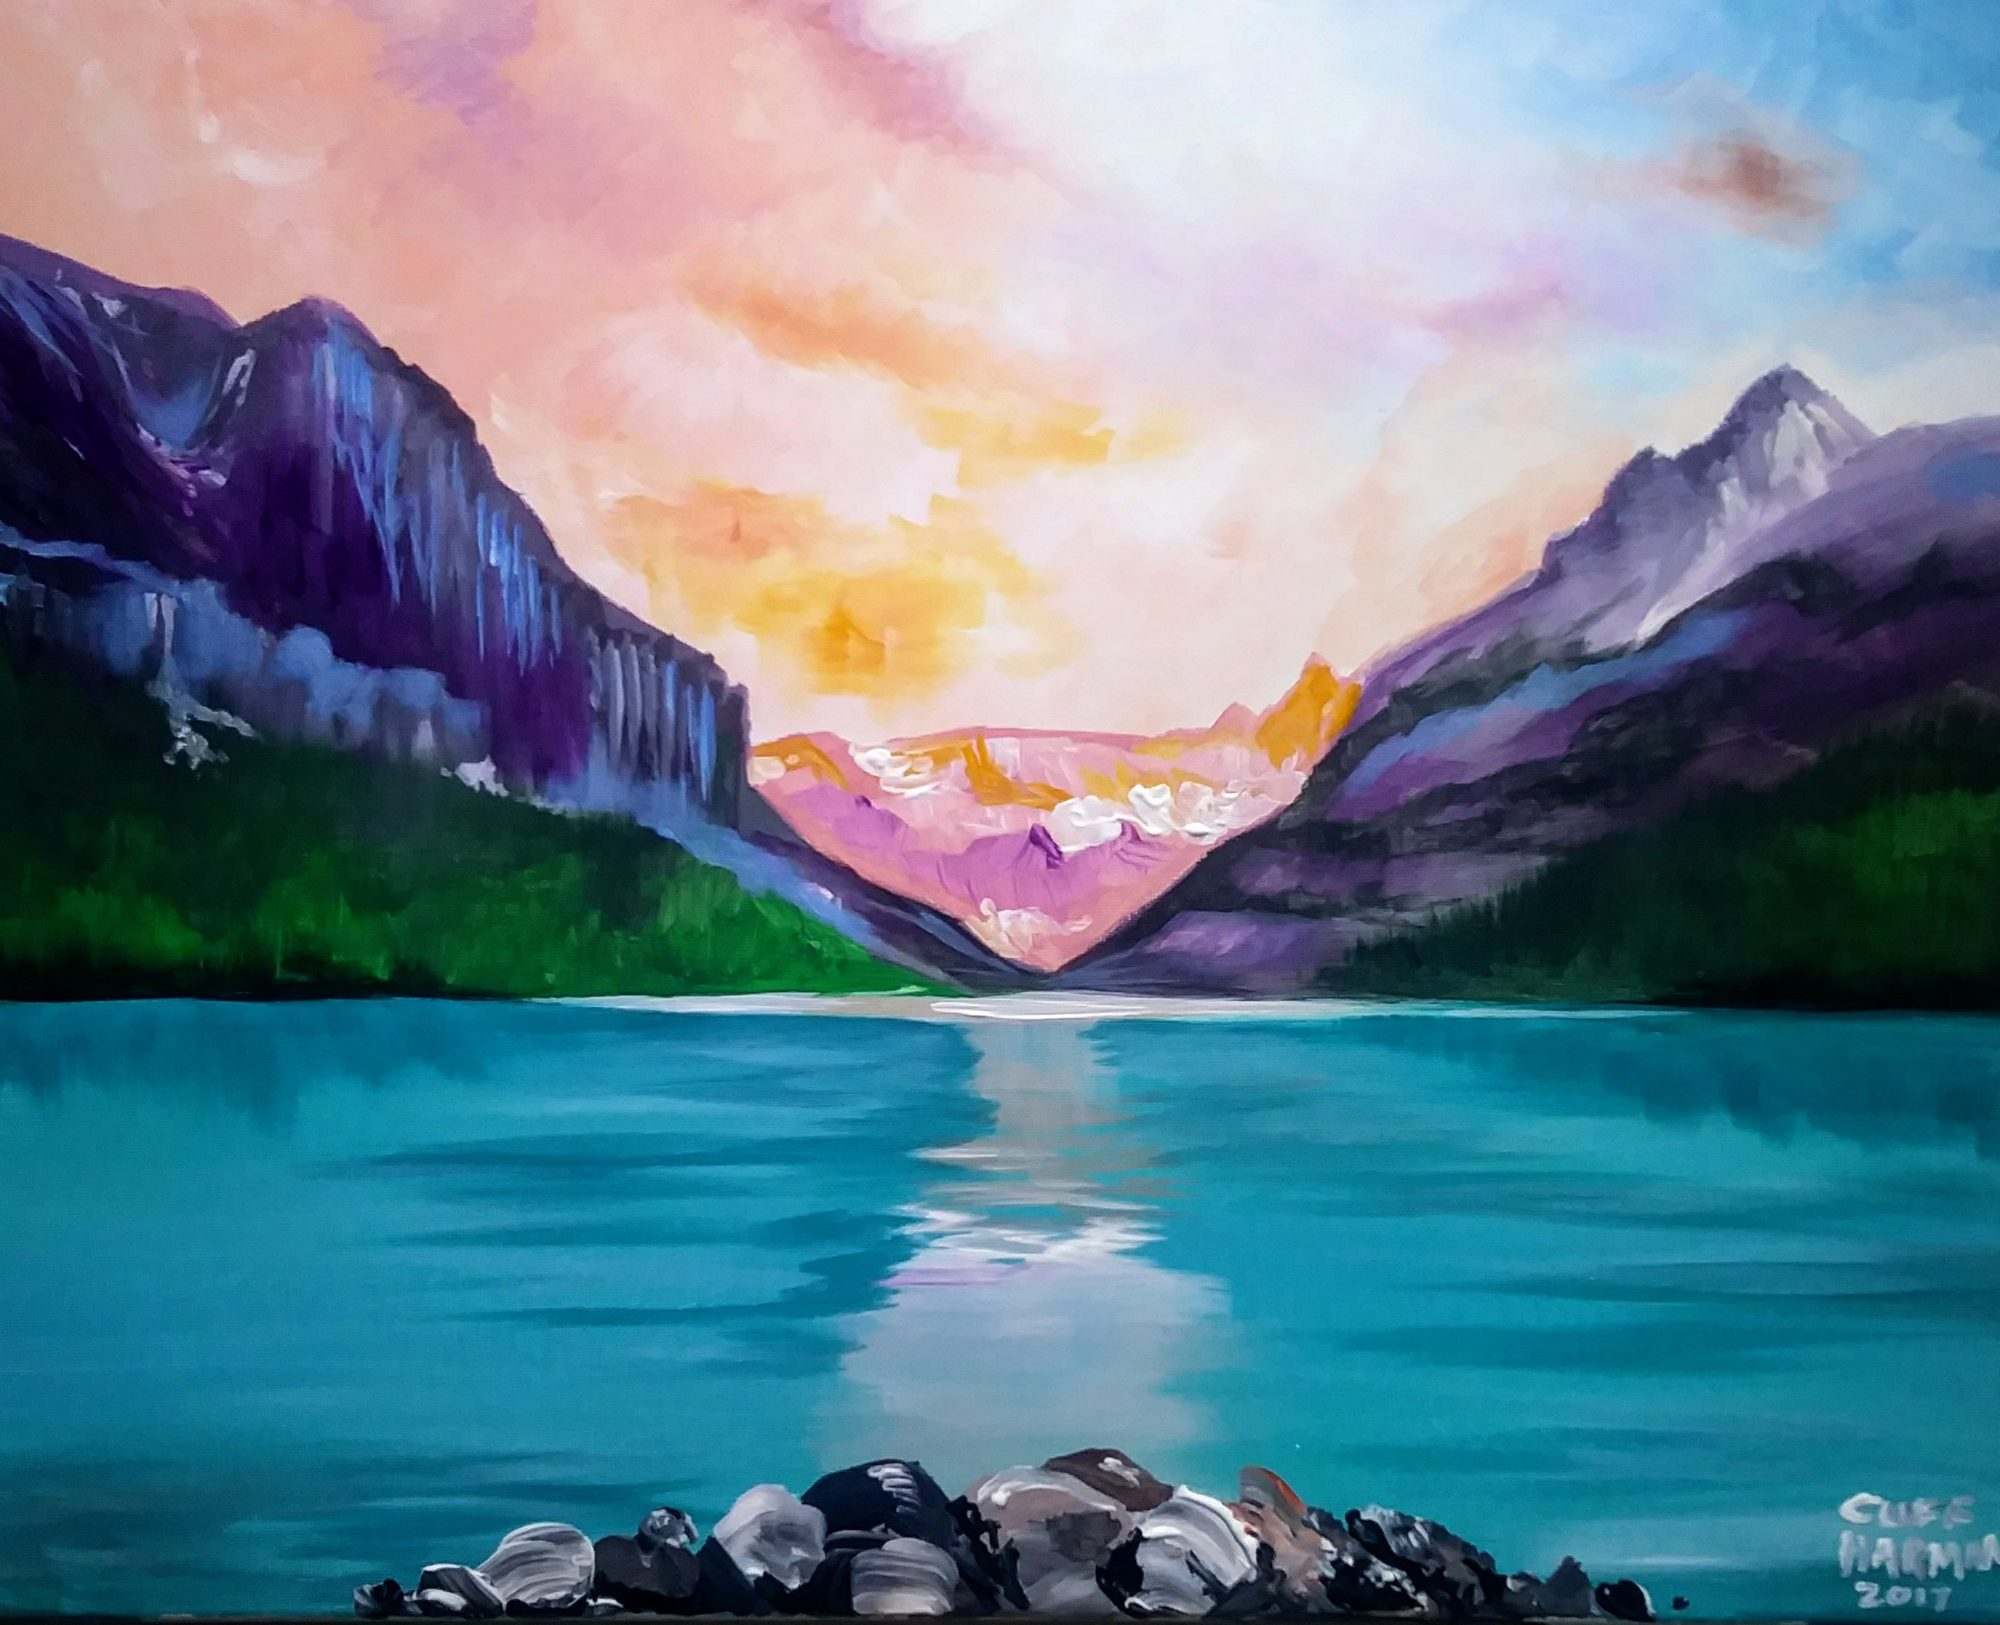 B9 Banff National Park - Sip and Paint Parties in Bartlett, IL